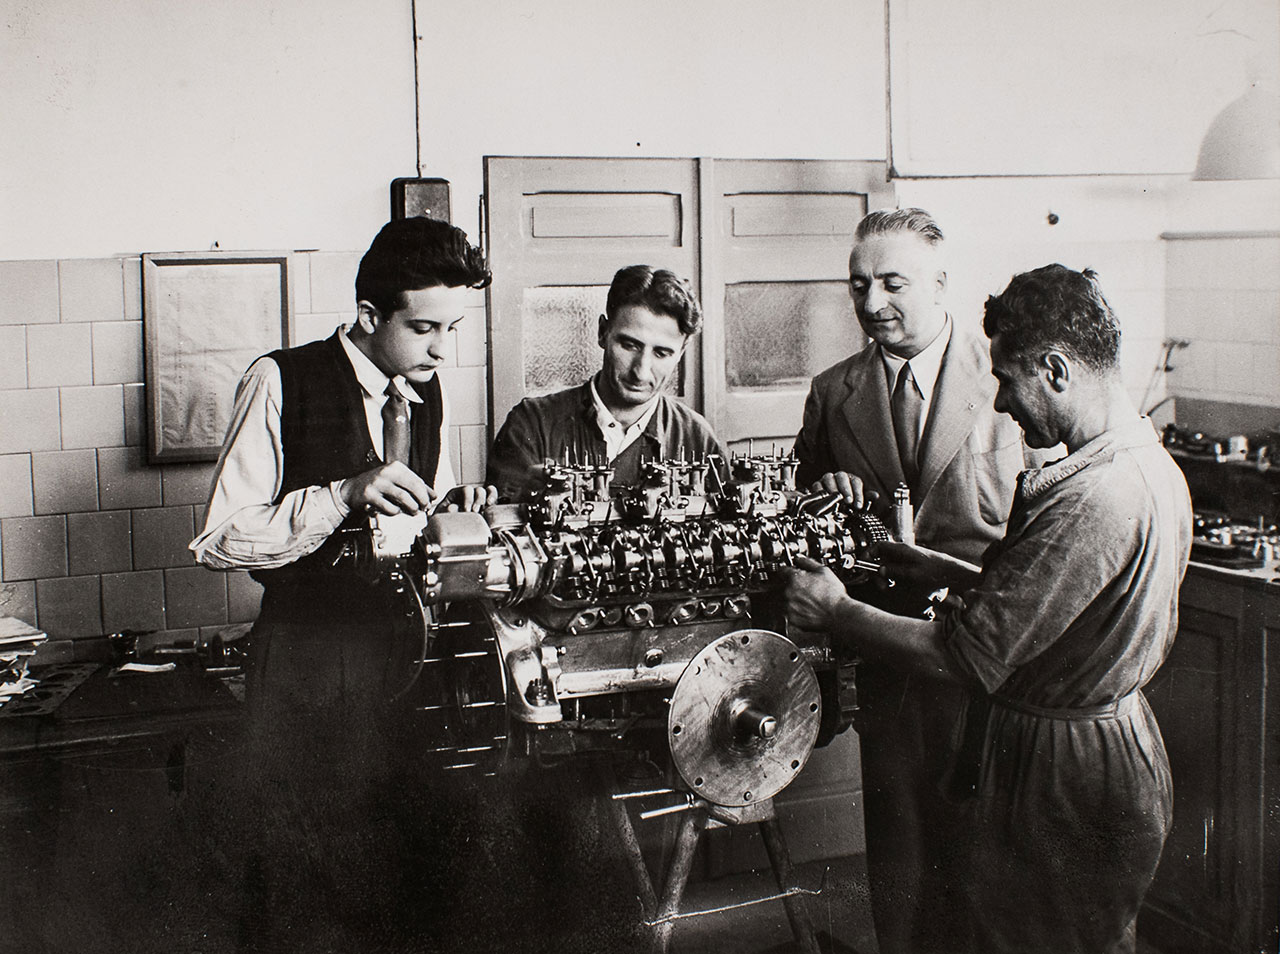 Enzo Ferrari in Factory, 1947. Photo courtesy of Ferrari.